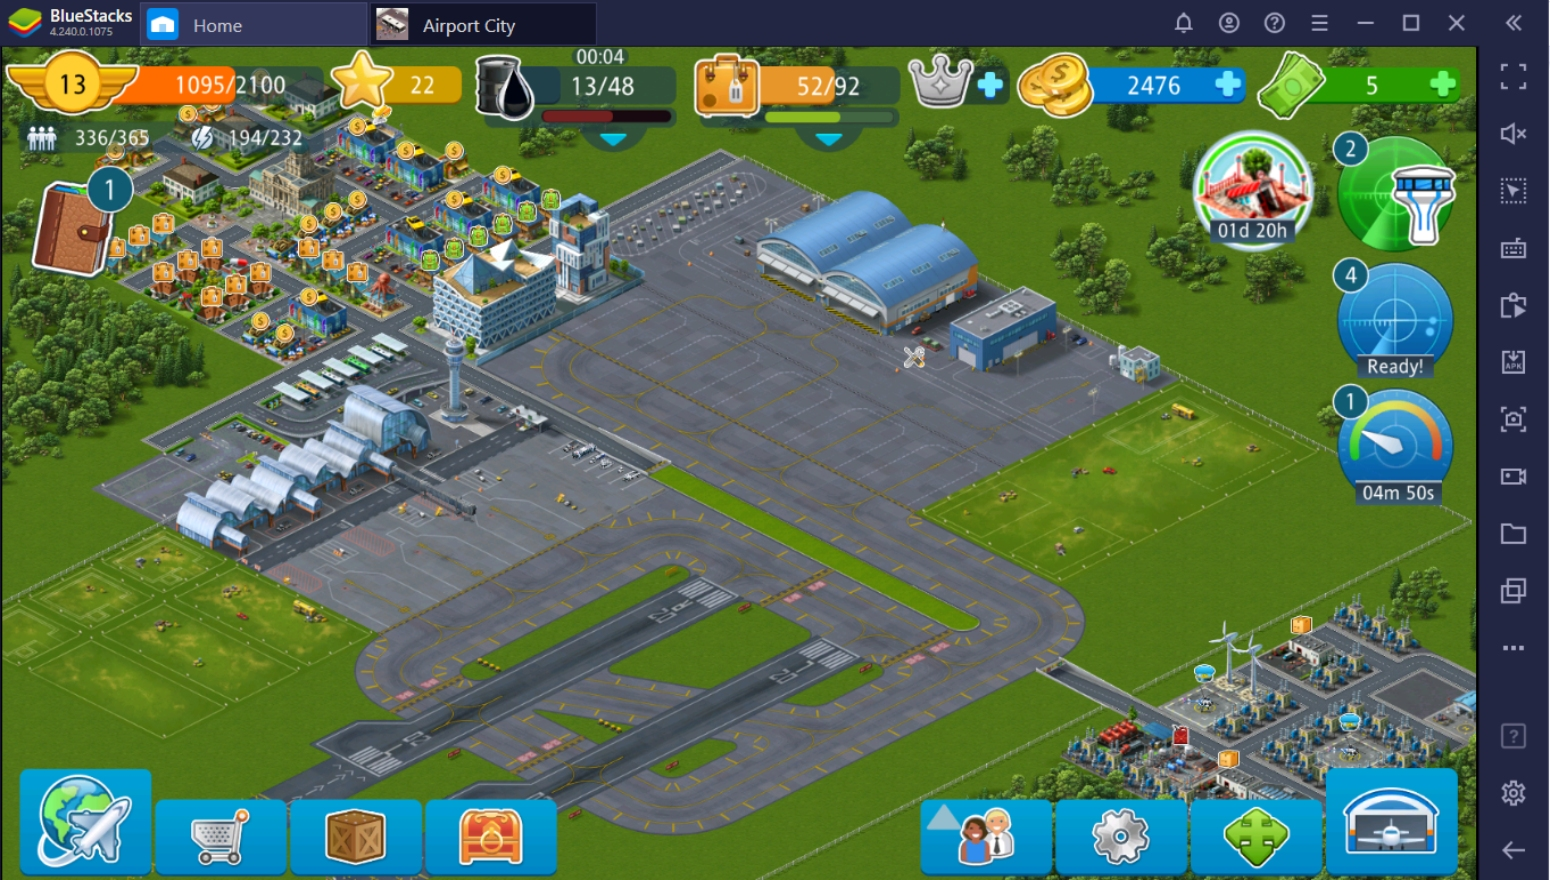 Airport City on PC – Learn to Build a Great City Using this Expansion Guide